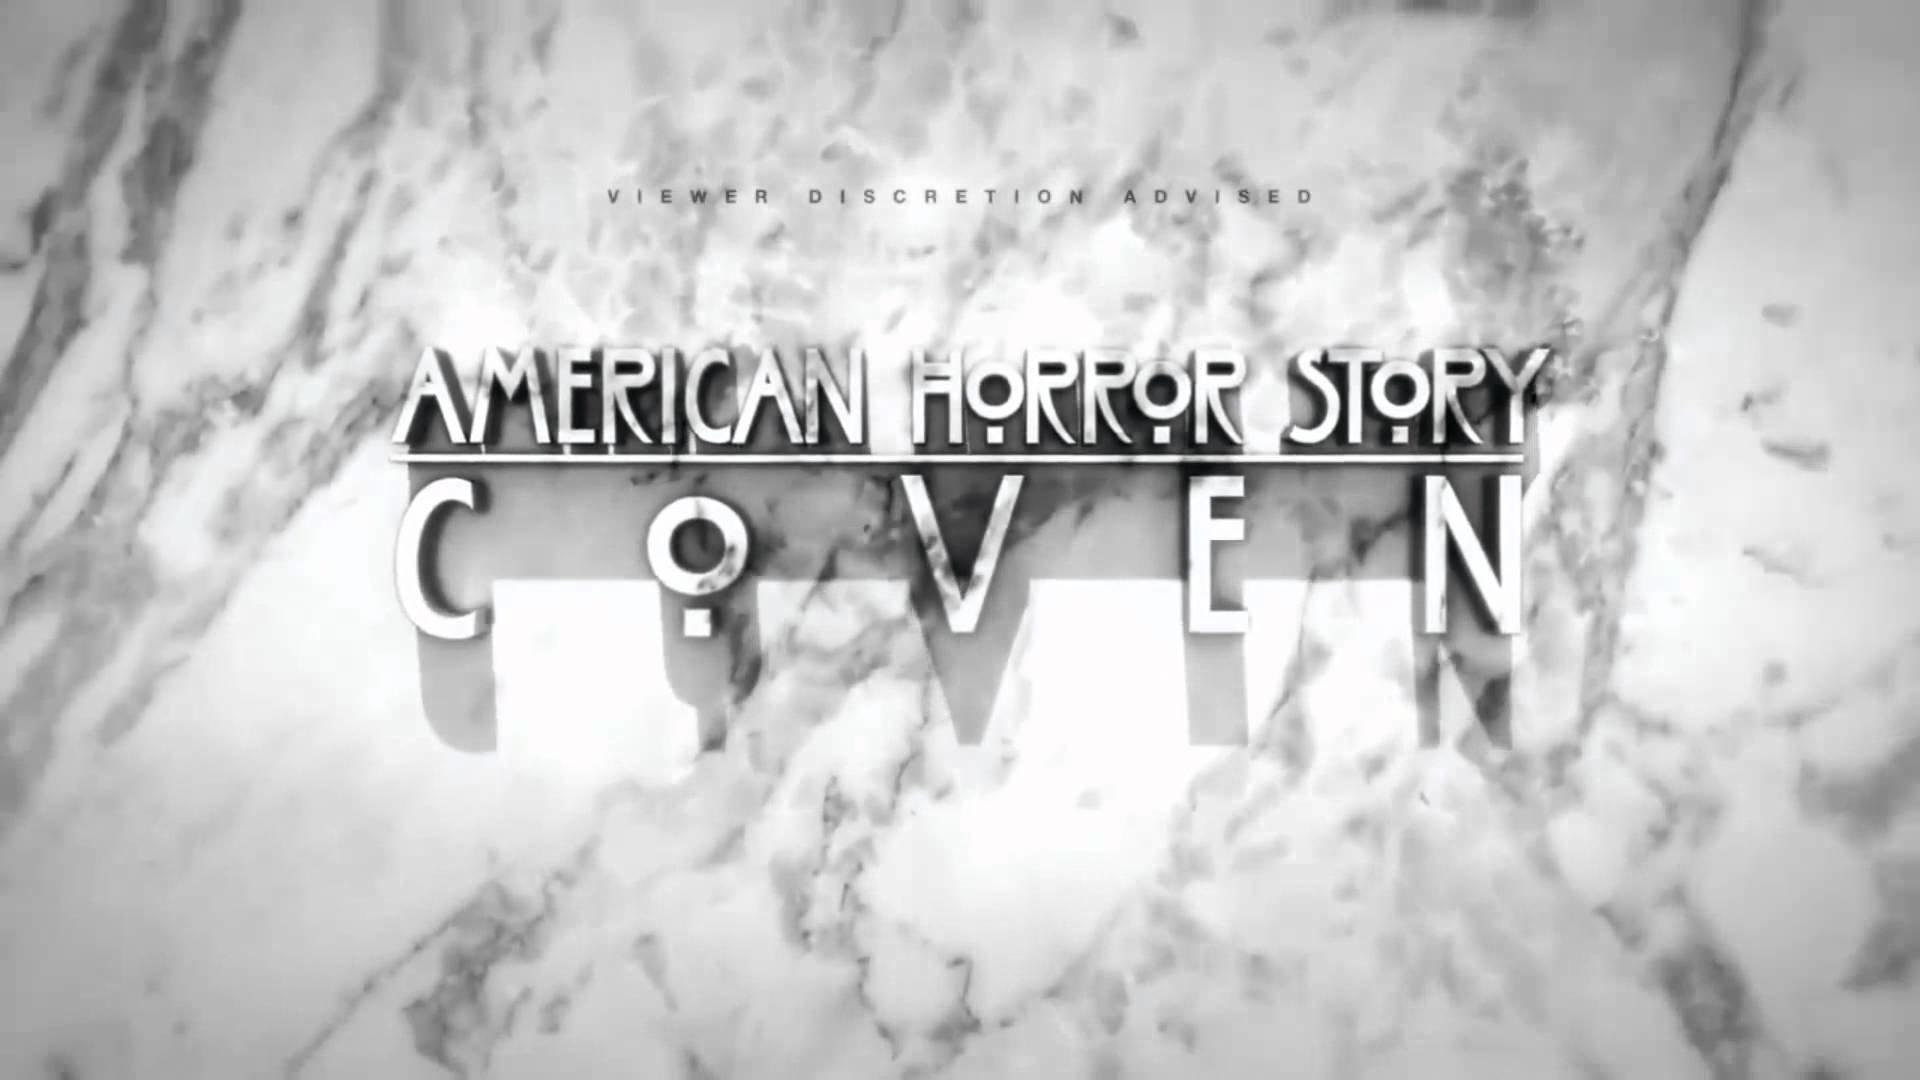 American Horror Story Coven Wallpapers Hd For Desktop Backgrounds